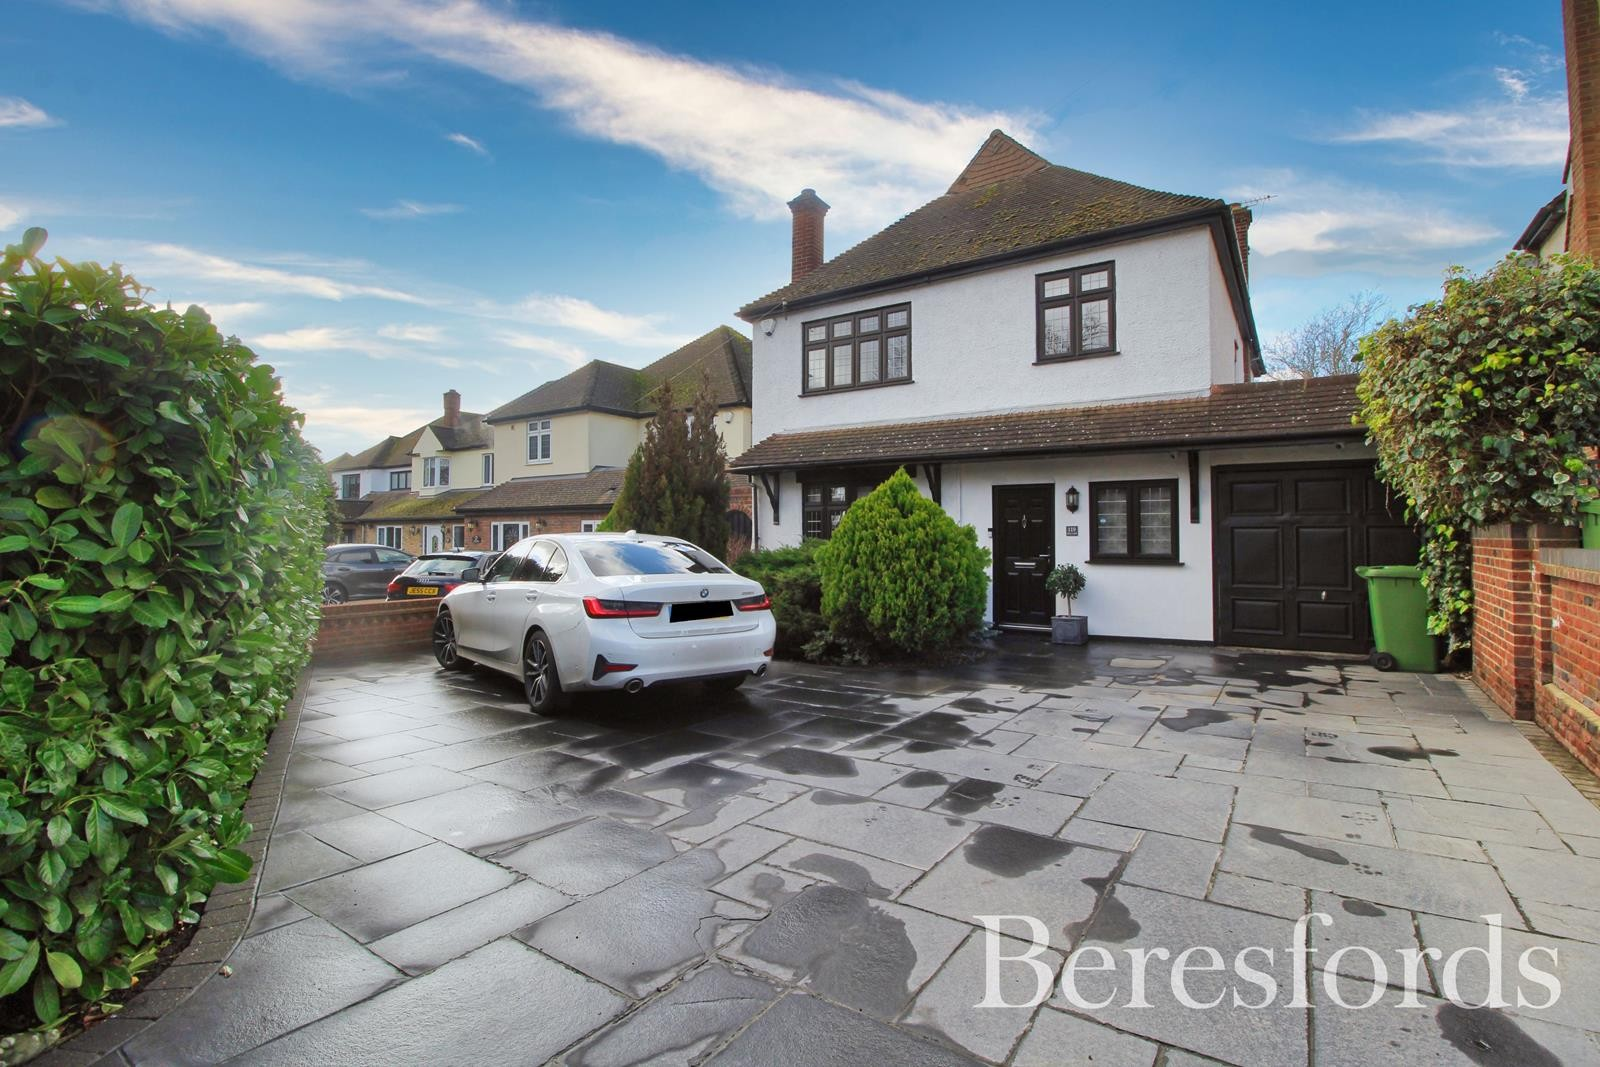 Hall Lane, Upminster, Essex, RM14